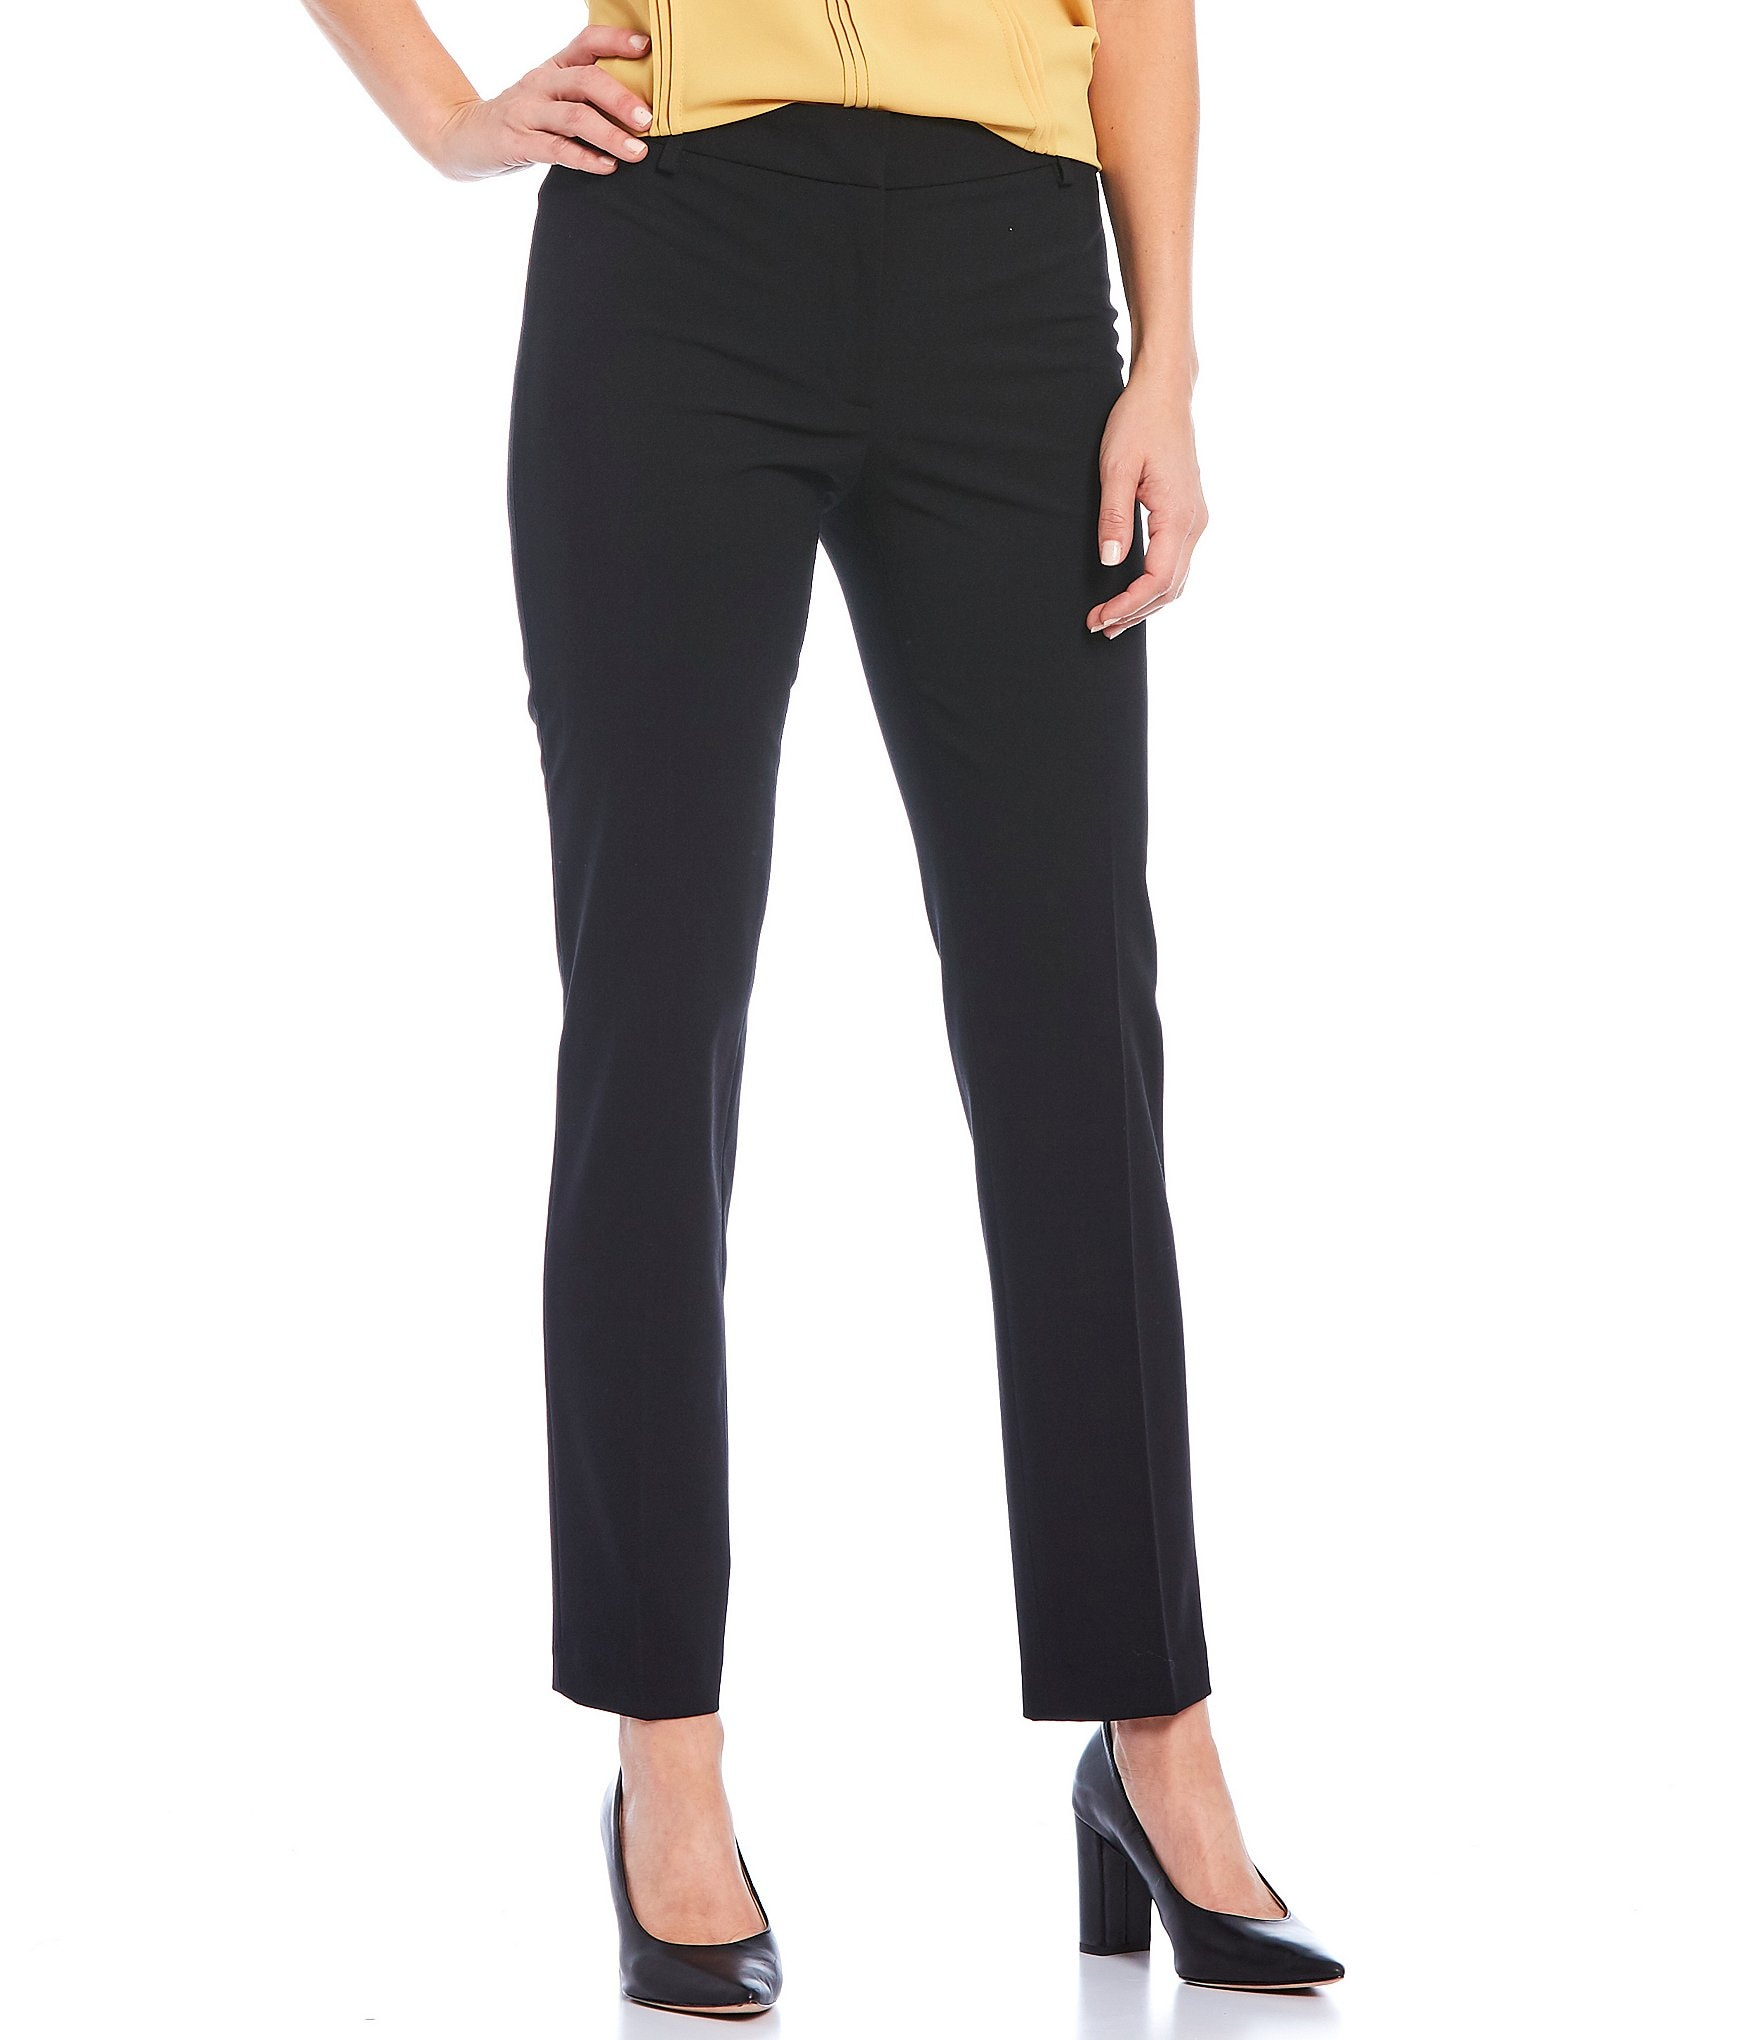 Wonderful Wide Leg Dress Pants For Women - Pi Pants